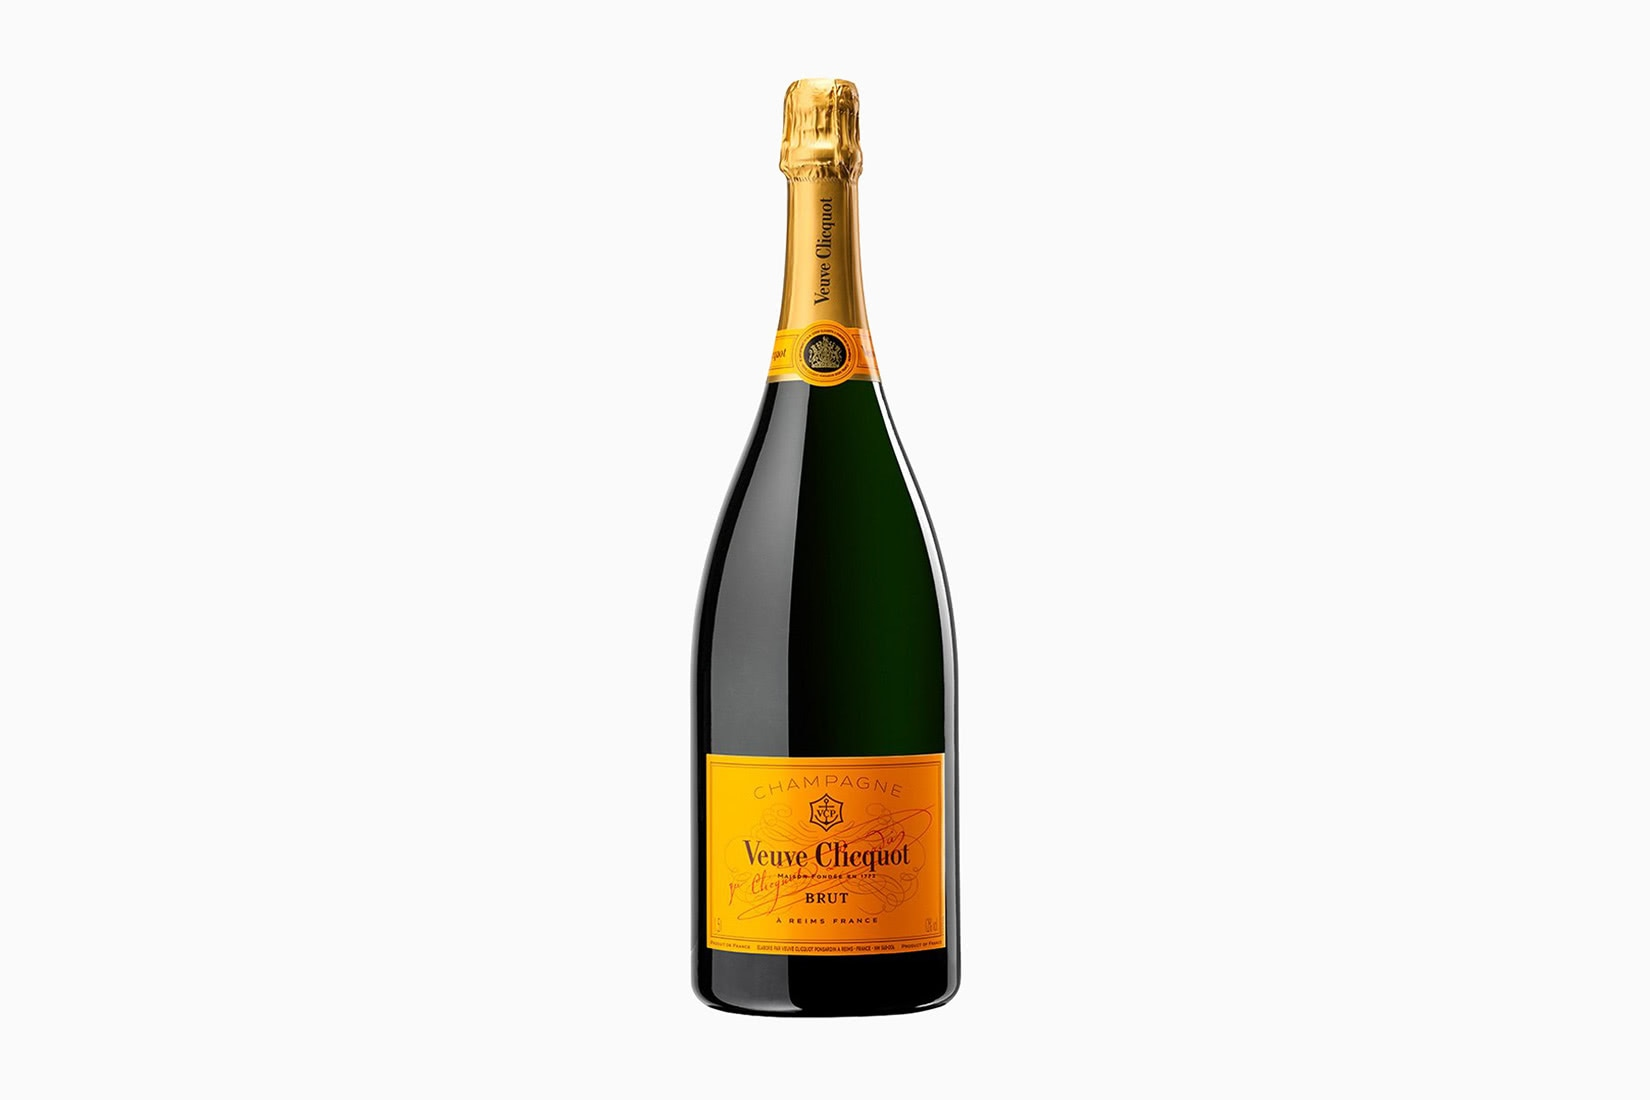 veuve clicquot bottle price size - Luxe Digital